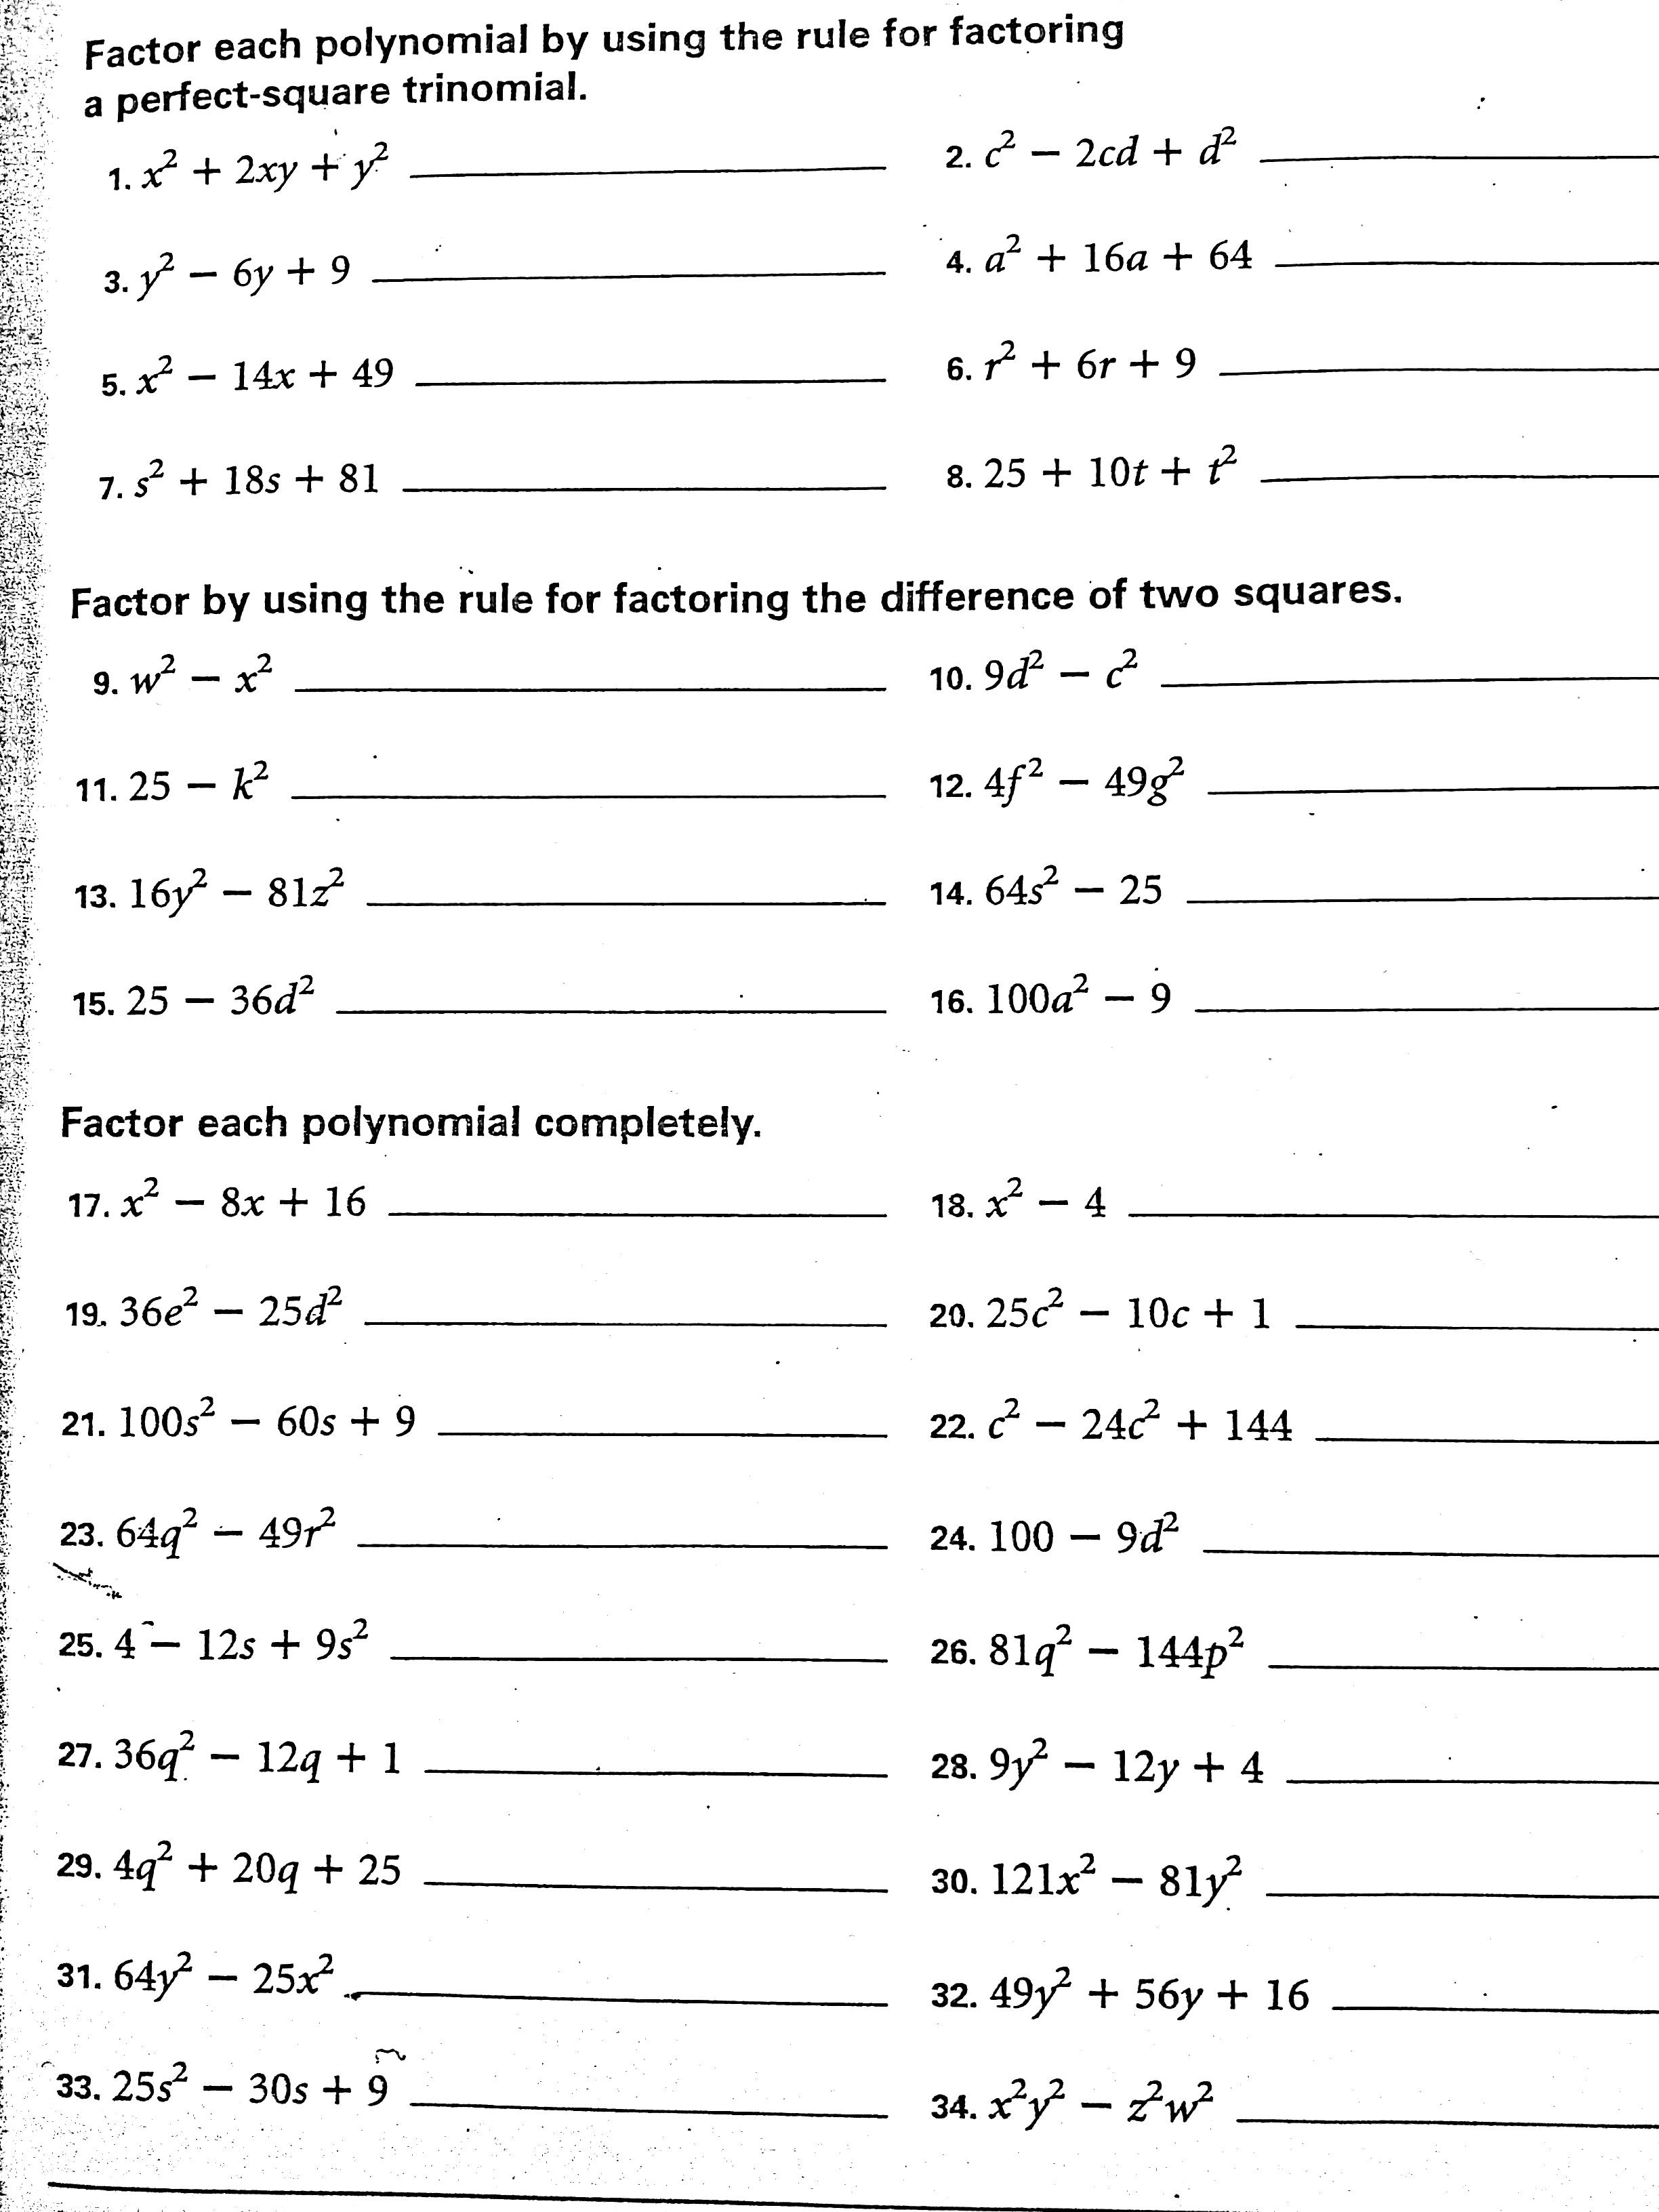 Worksheets Factoring Perfect Squares Worksheet worksheet perfect square grass fedjp study site algebra 1 assignments swenson math attachments difference of squares jpg